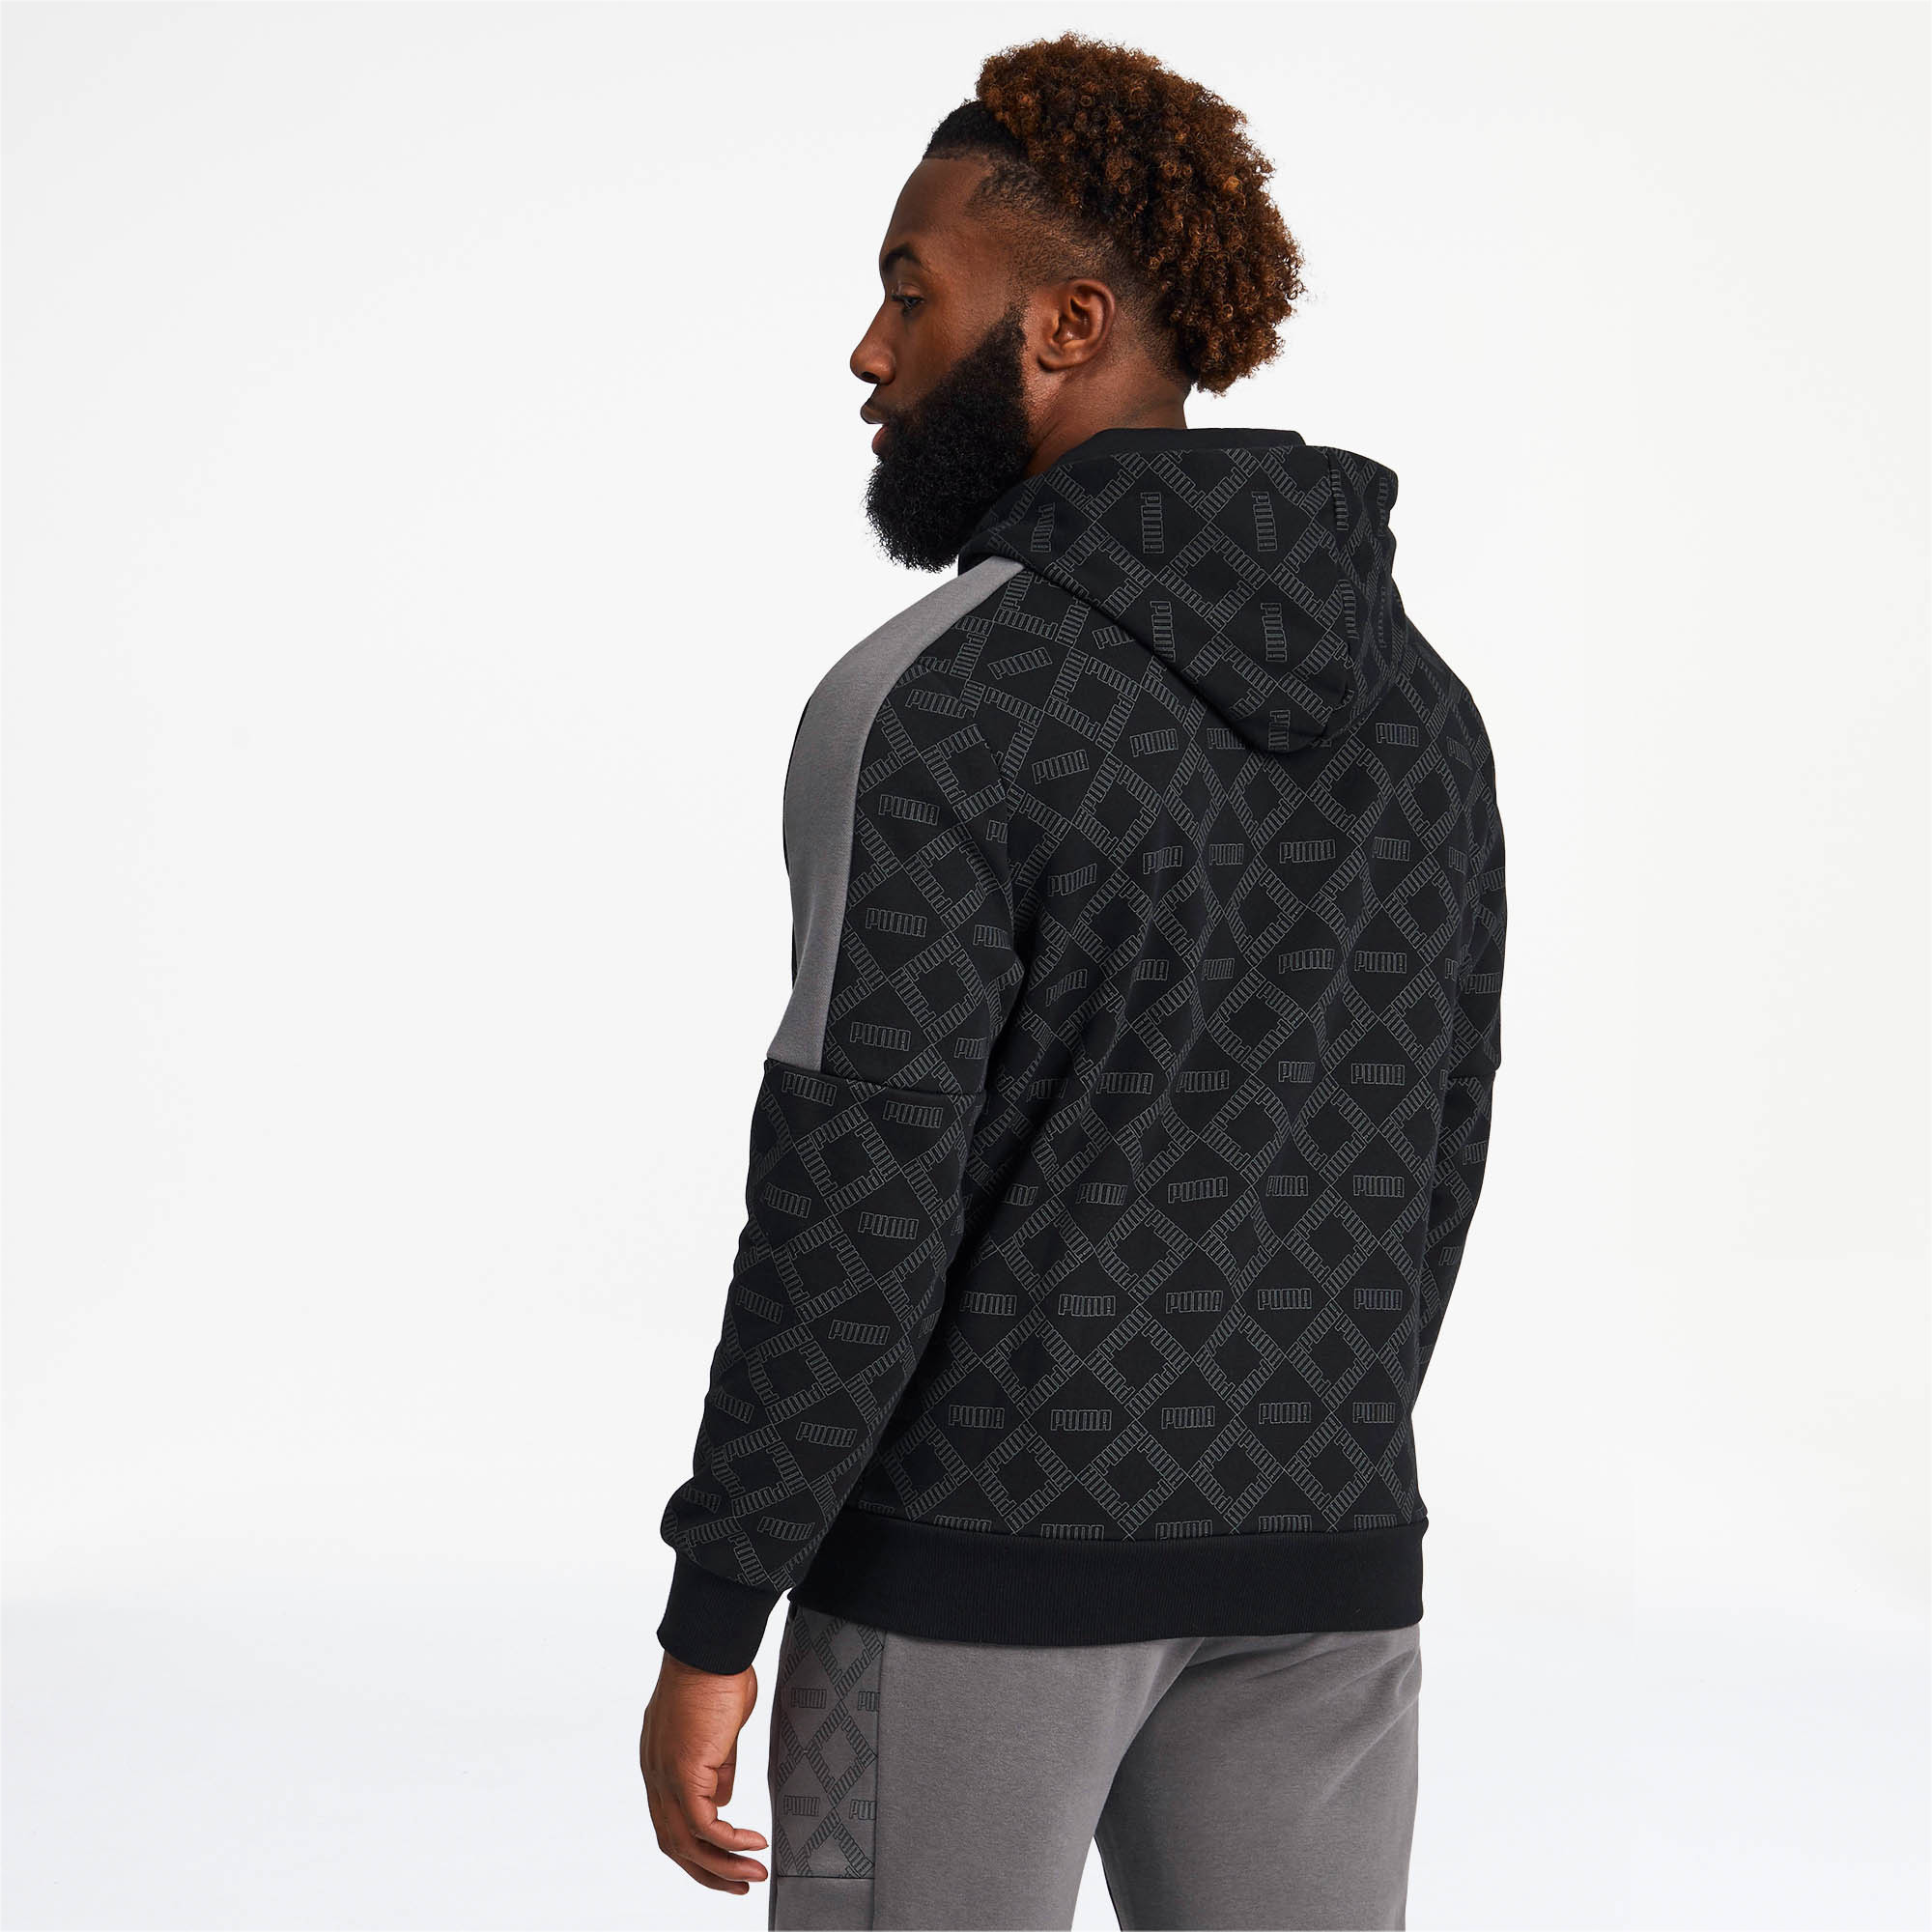 PUMA-Logo-AOP-Pack-Men-039-s-Hoodie-Men-Sweat-Basics thumbnail 5